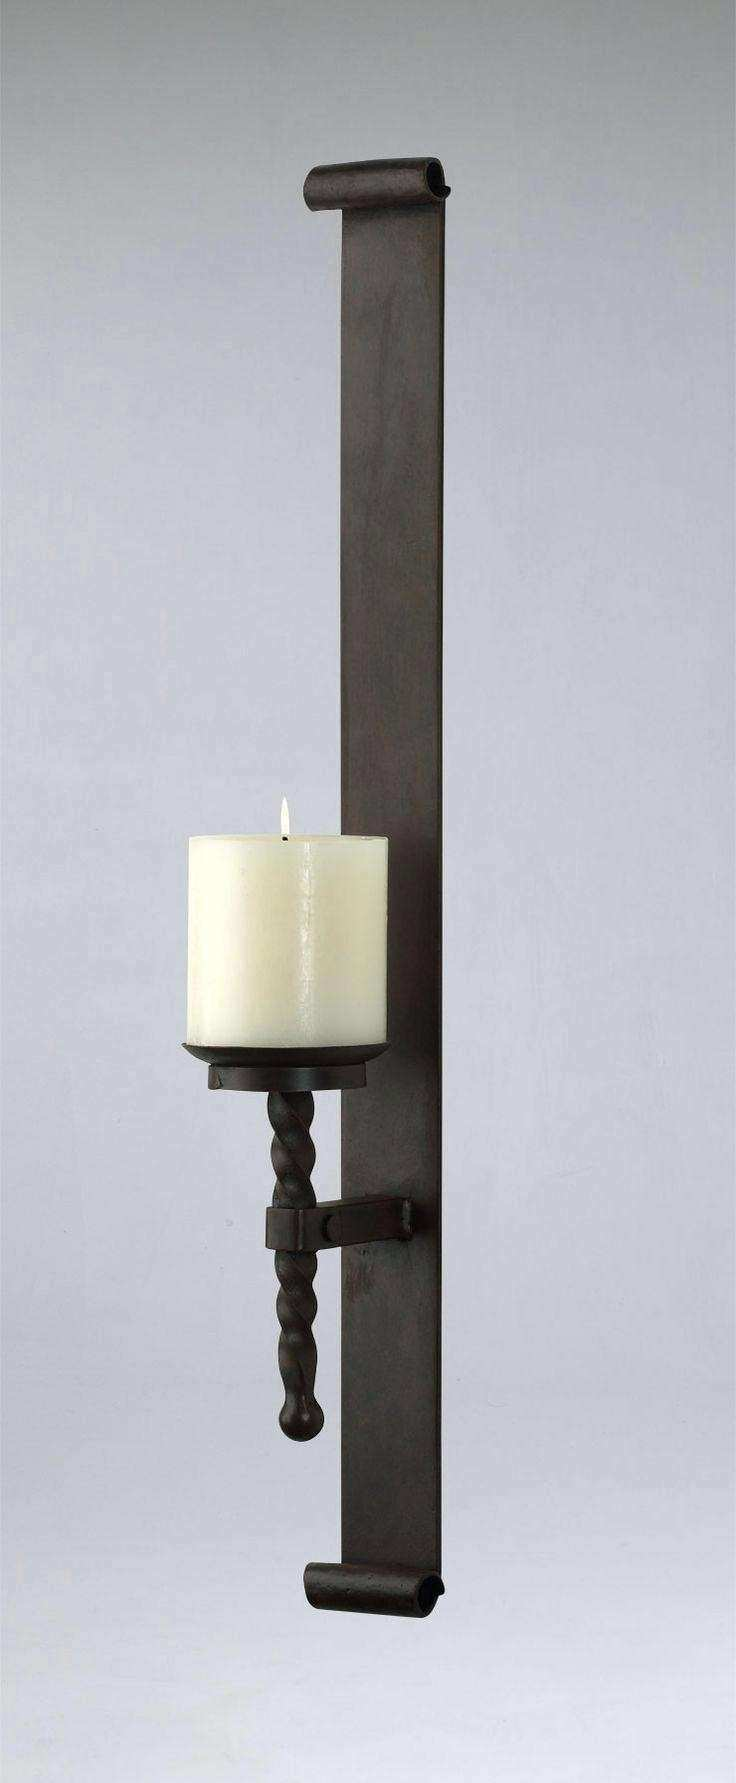 Sconce Decorative Wall Sconces Candle Holders